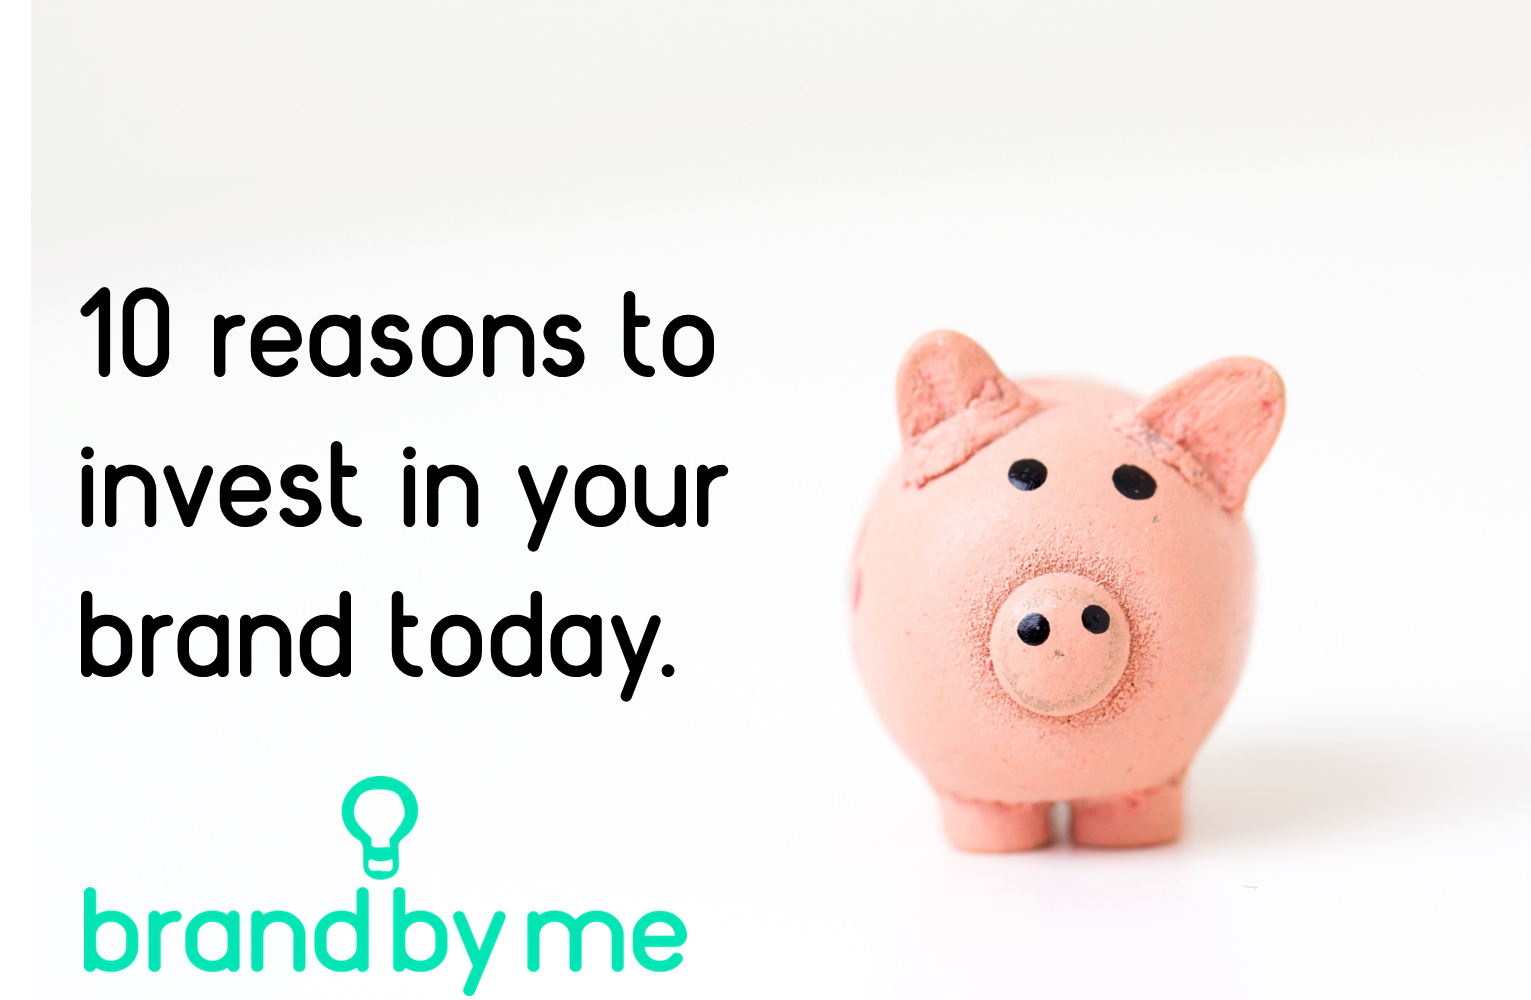 10 reasons to invest in your brand today blog post image with title